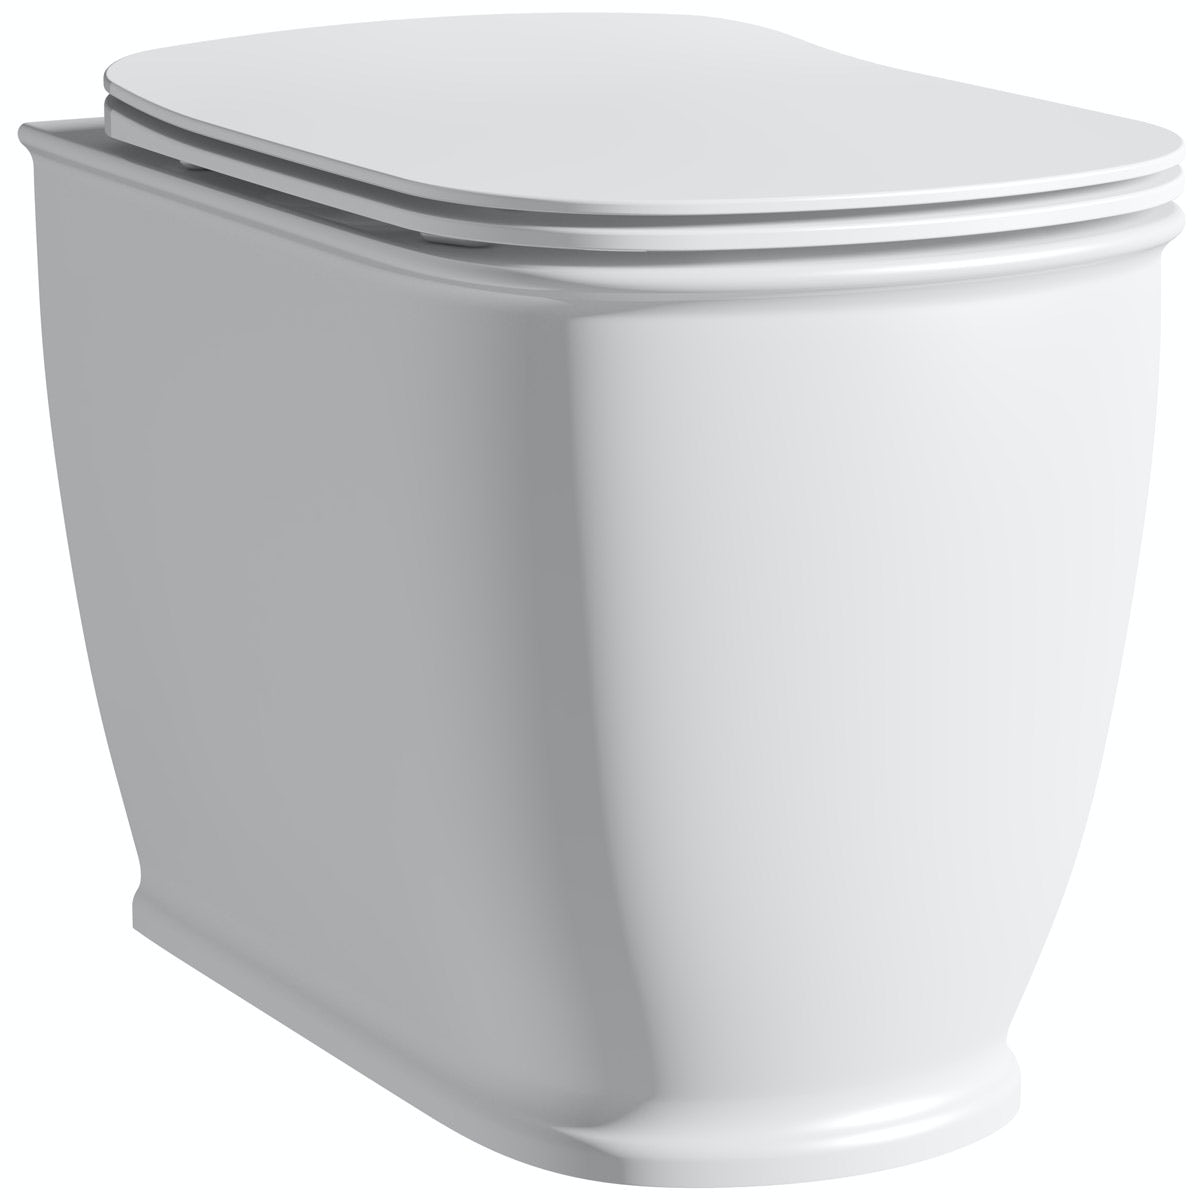 The Bath Co. Beaumont back to wall toilet with soft close seat